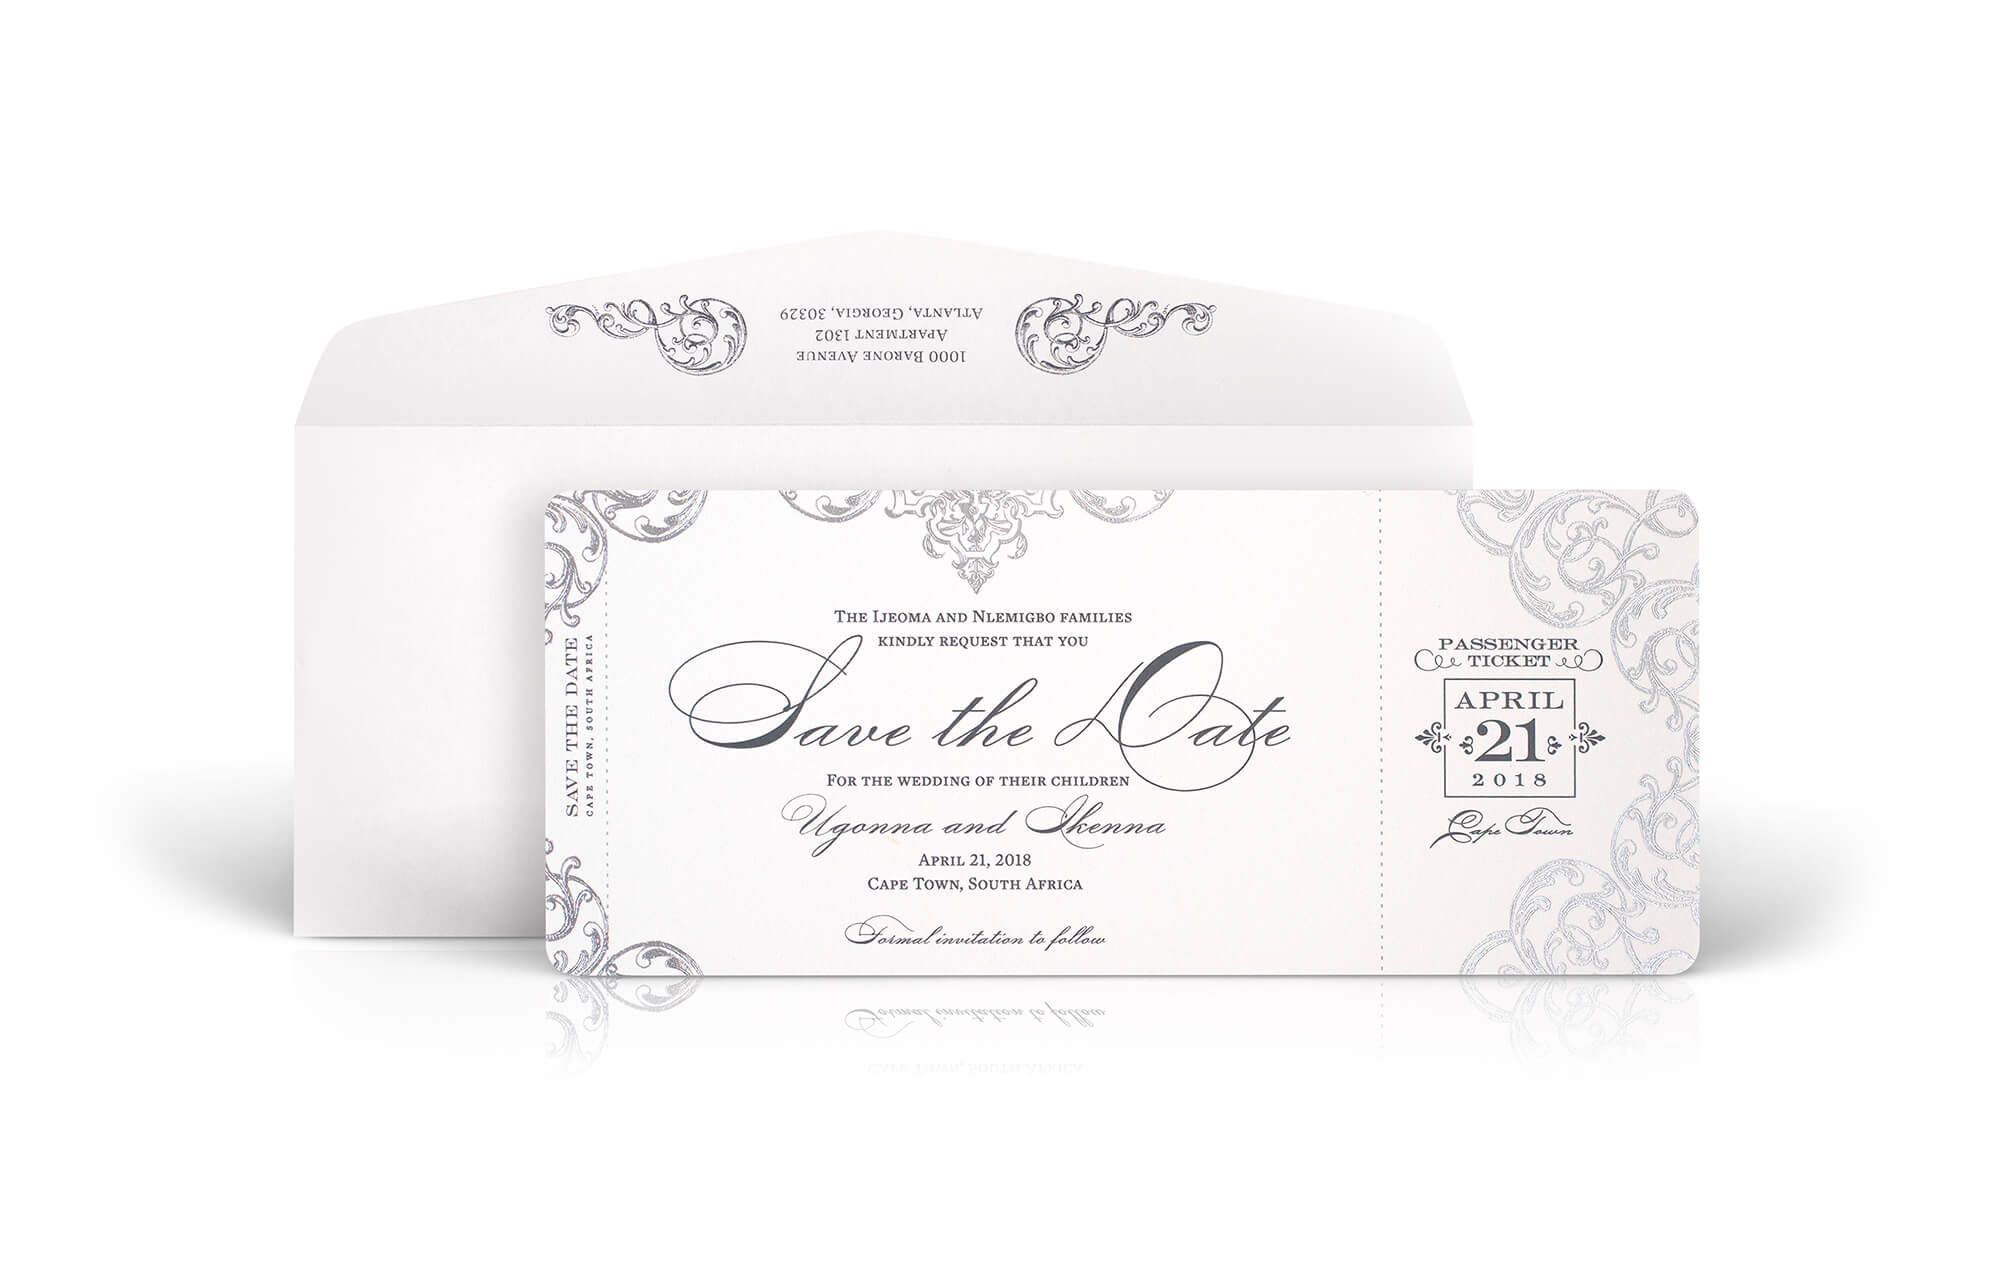 Ornate scrollwork save the date for a destination wedding